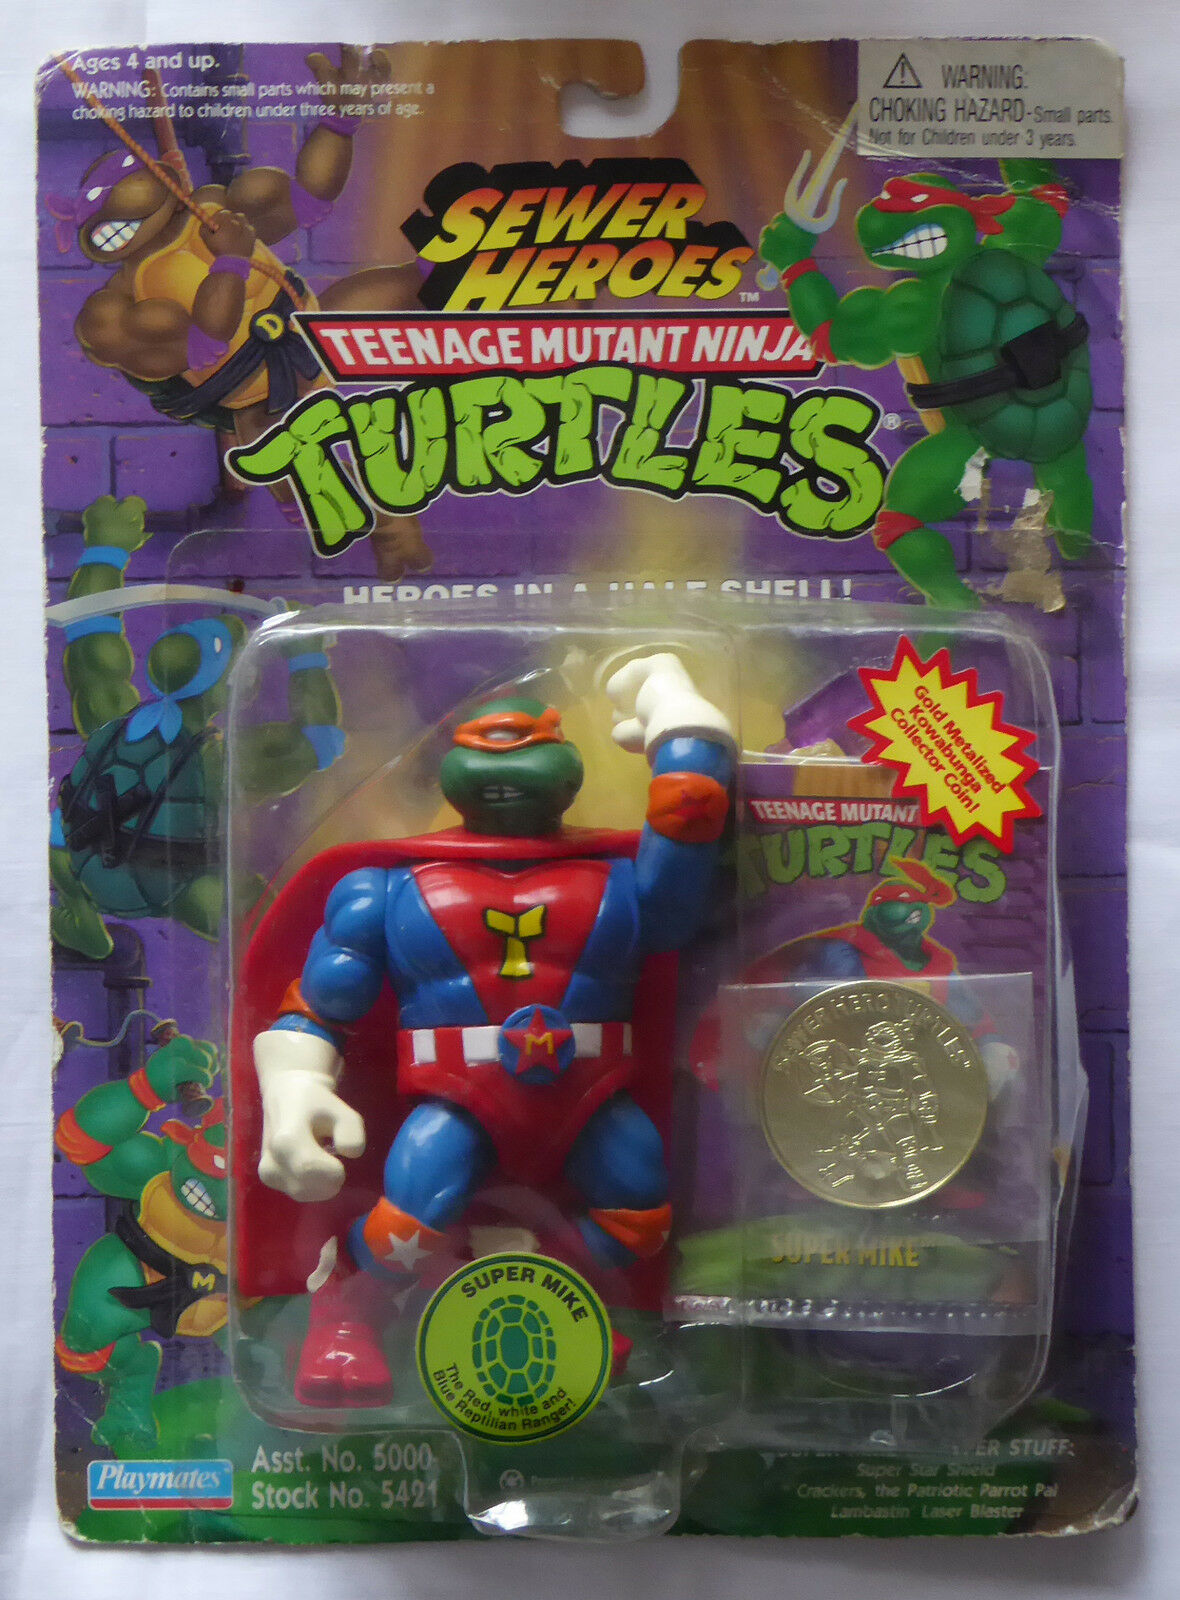 1994 TMNT Teenage Mutant Ninja Turtles figure Super Mike - MISB